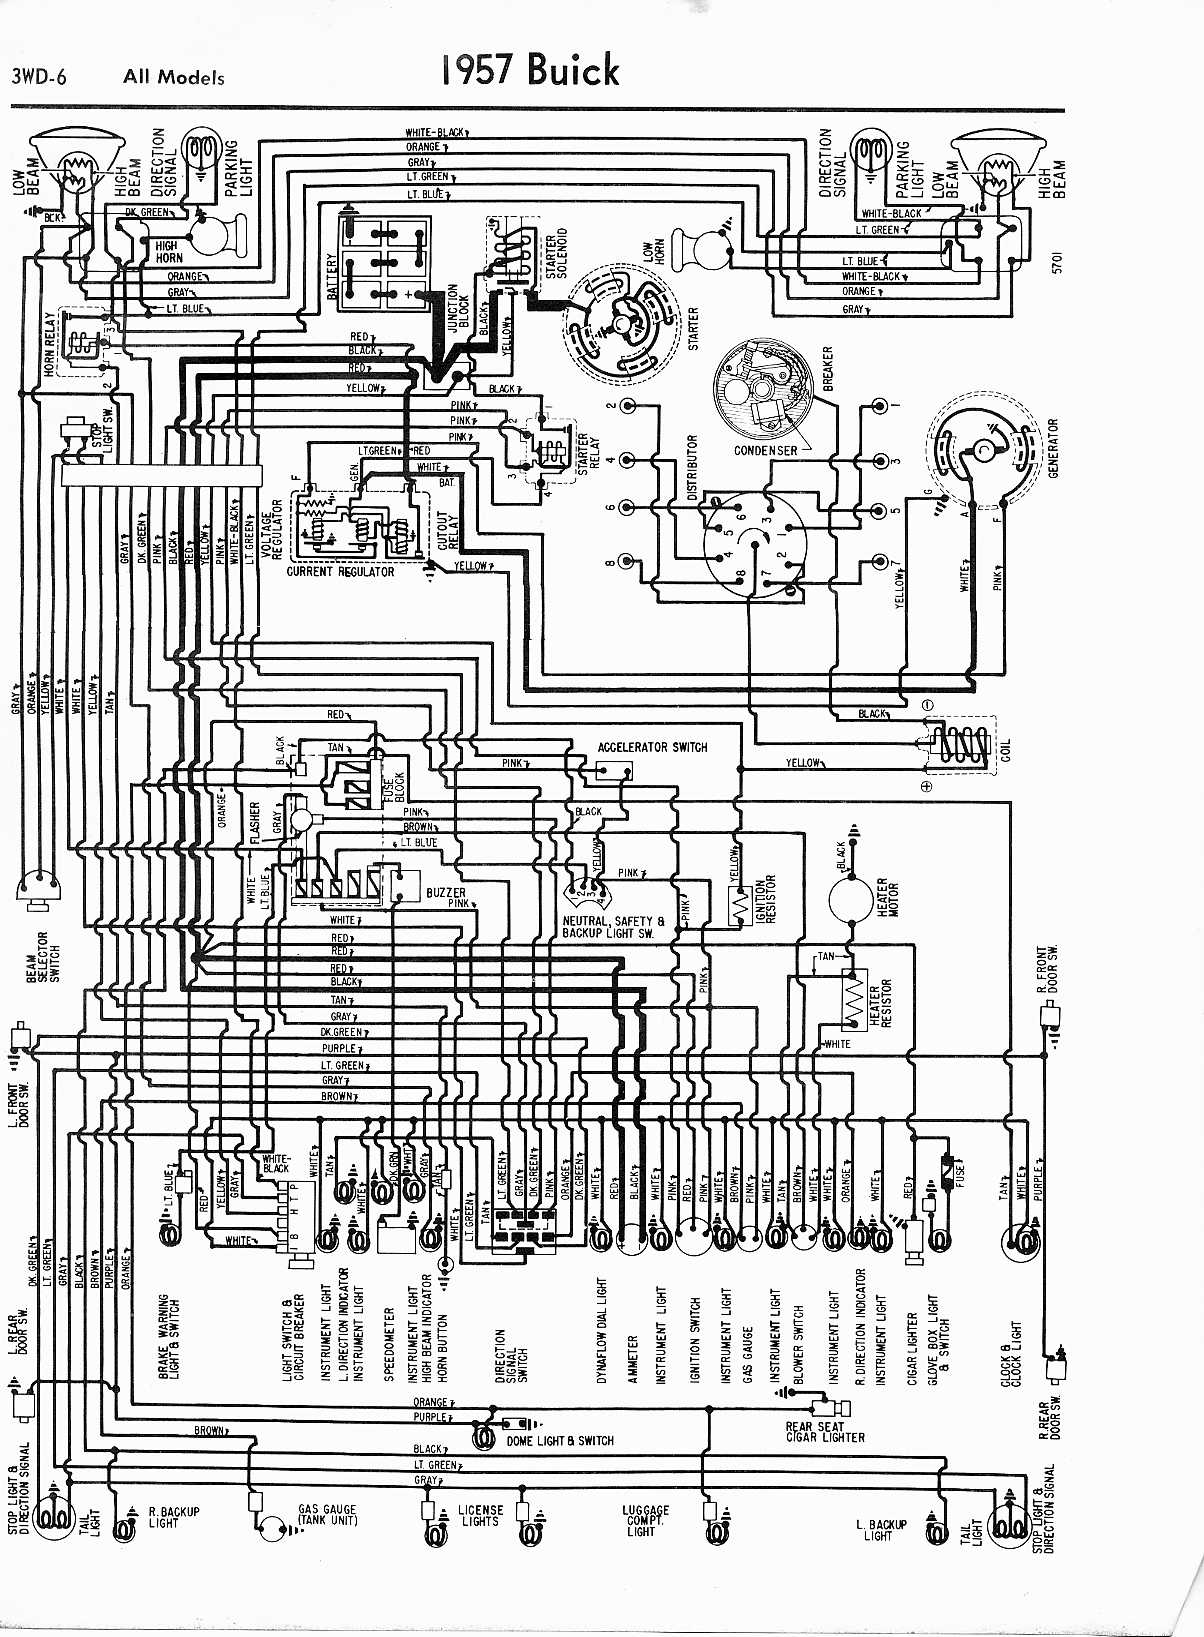 MWireBuic65_3WD 006 buick wiring diagrams 1957 1965 1999 buick lesabre wiring diagram at mifinder.co